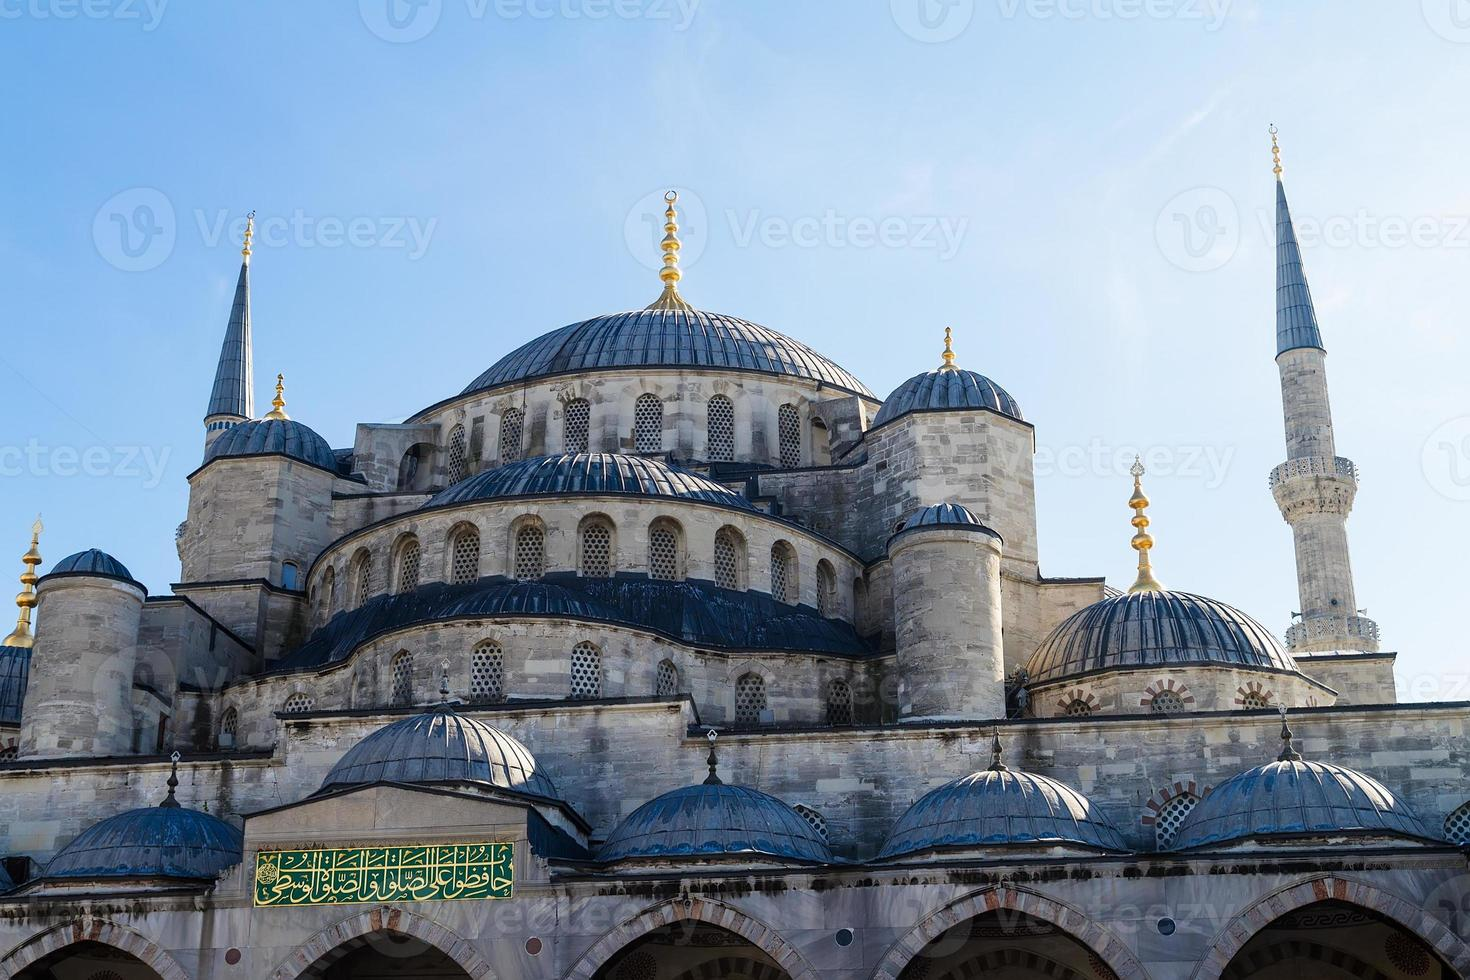 Sultan Ahmed Moschee, Istanbul Truthahn foto